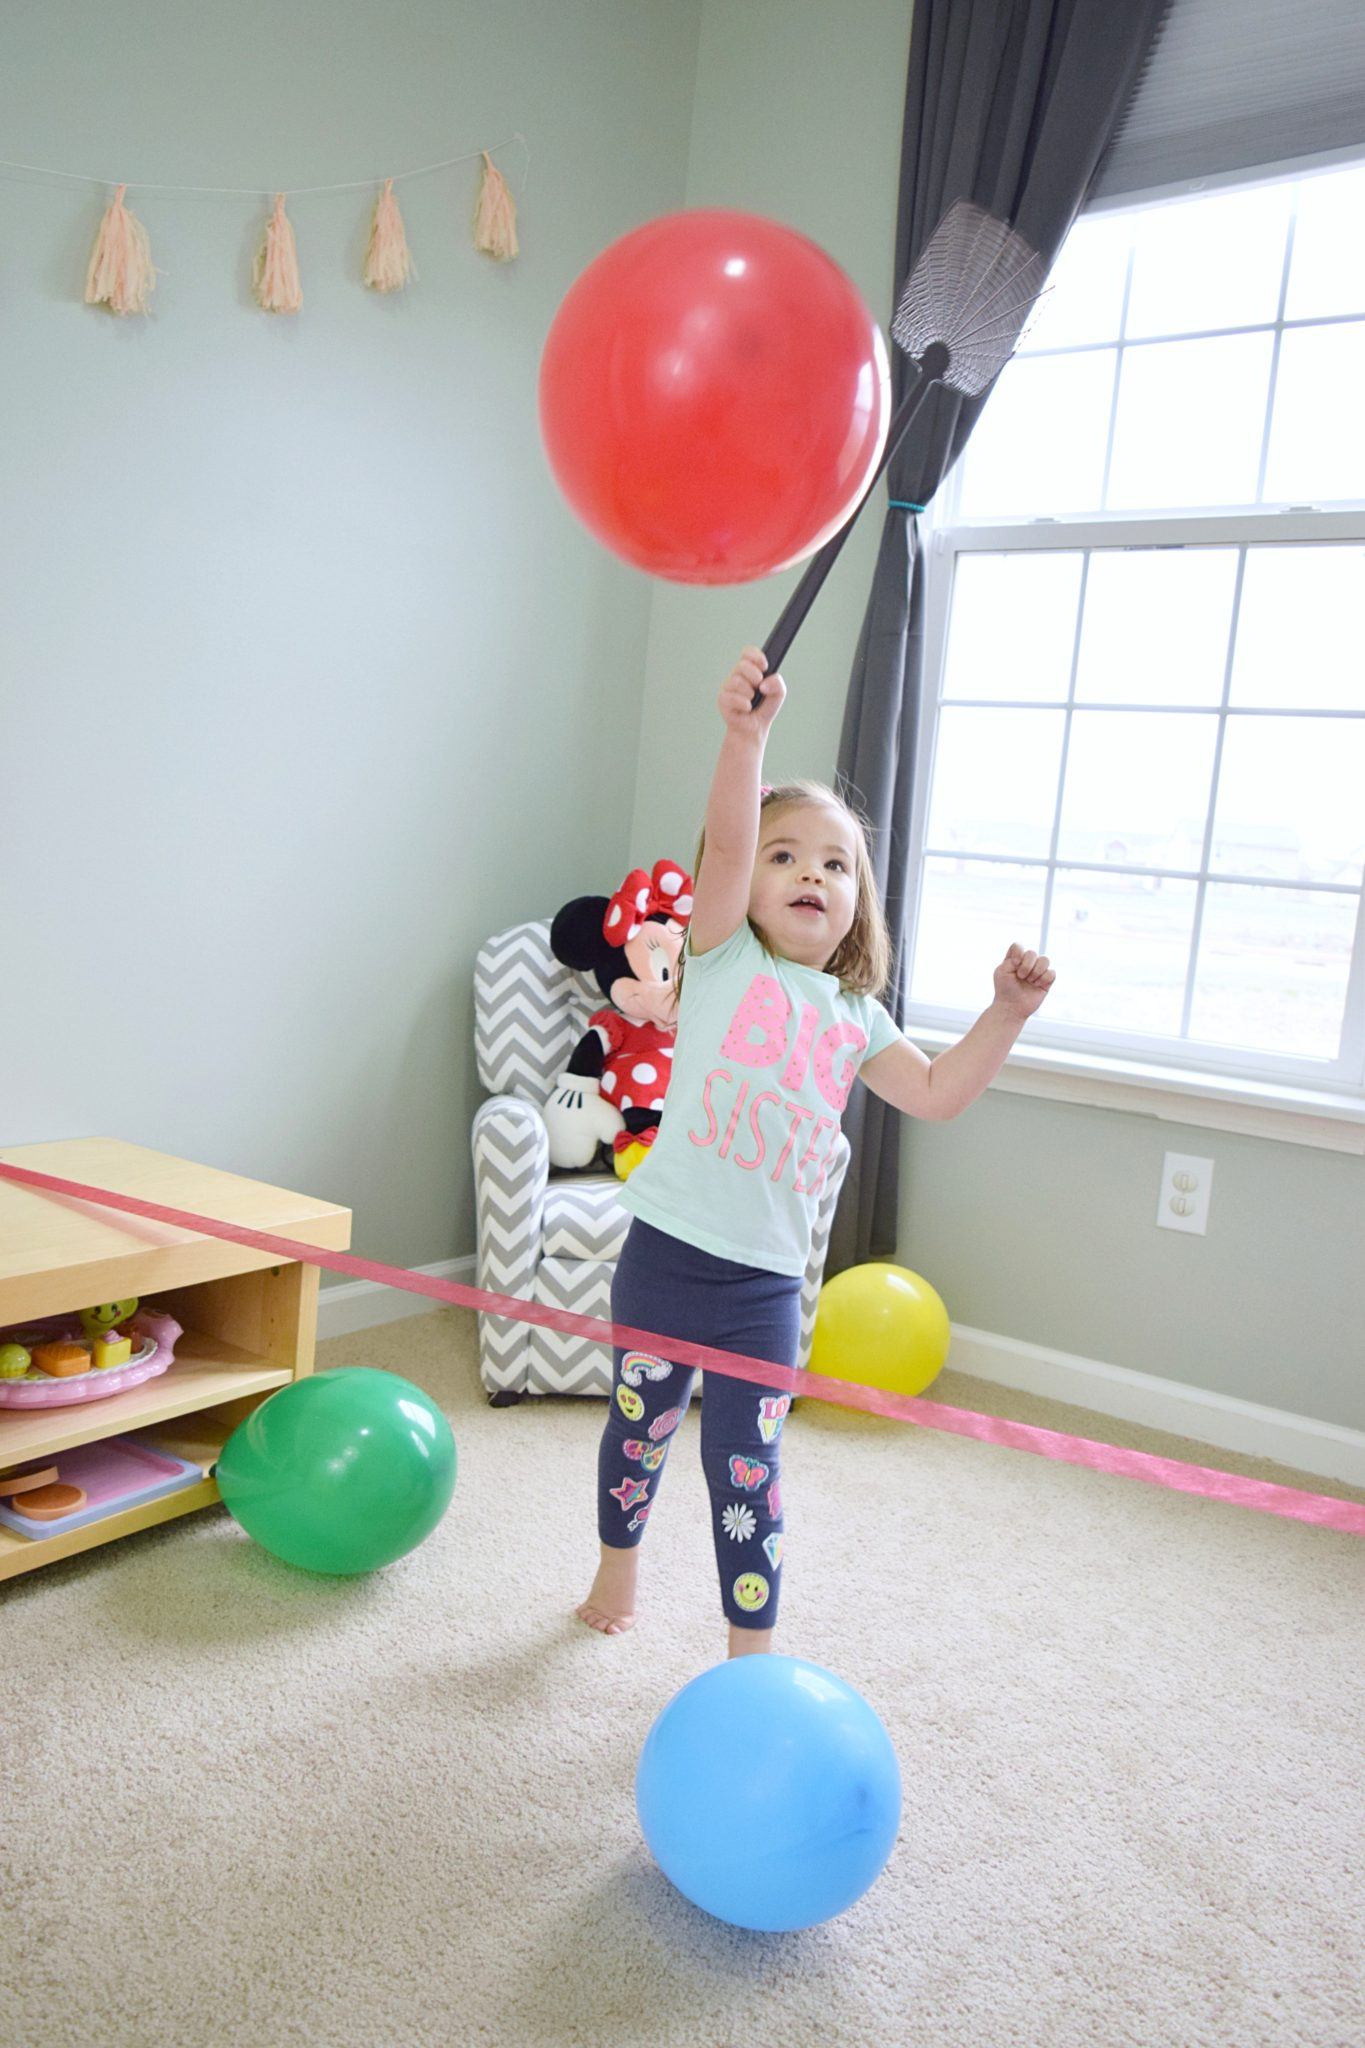 Tennis For Toddlers Balloon Olympics 7 Sports Kids Can Play With Balloons Entertain